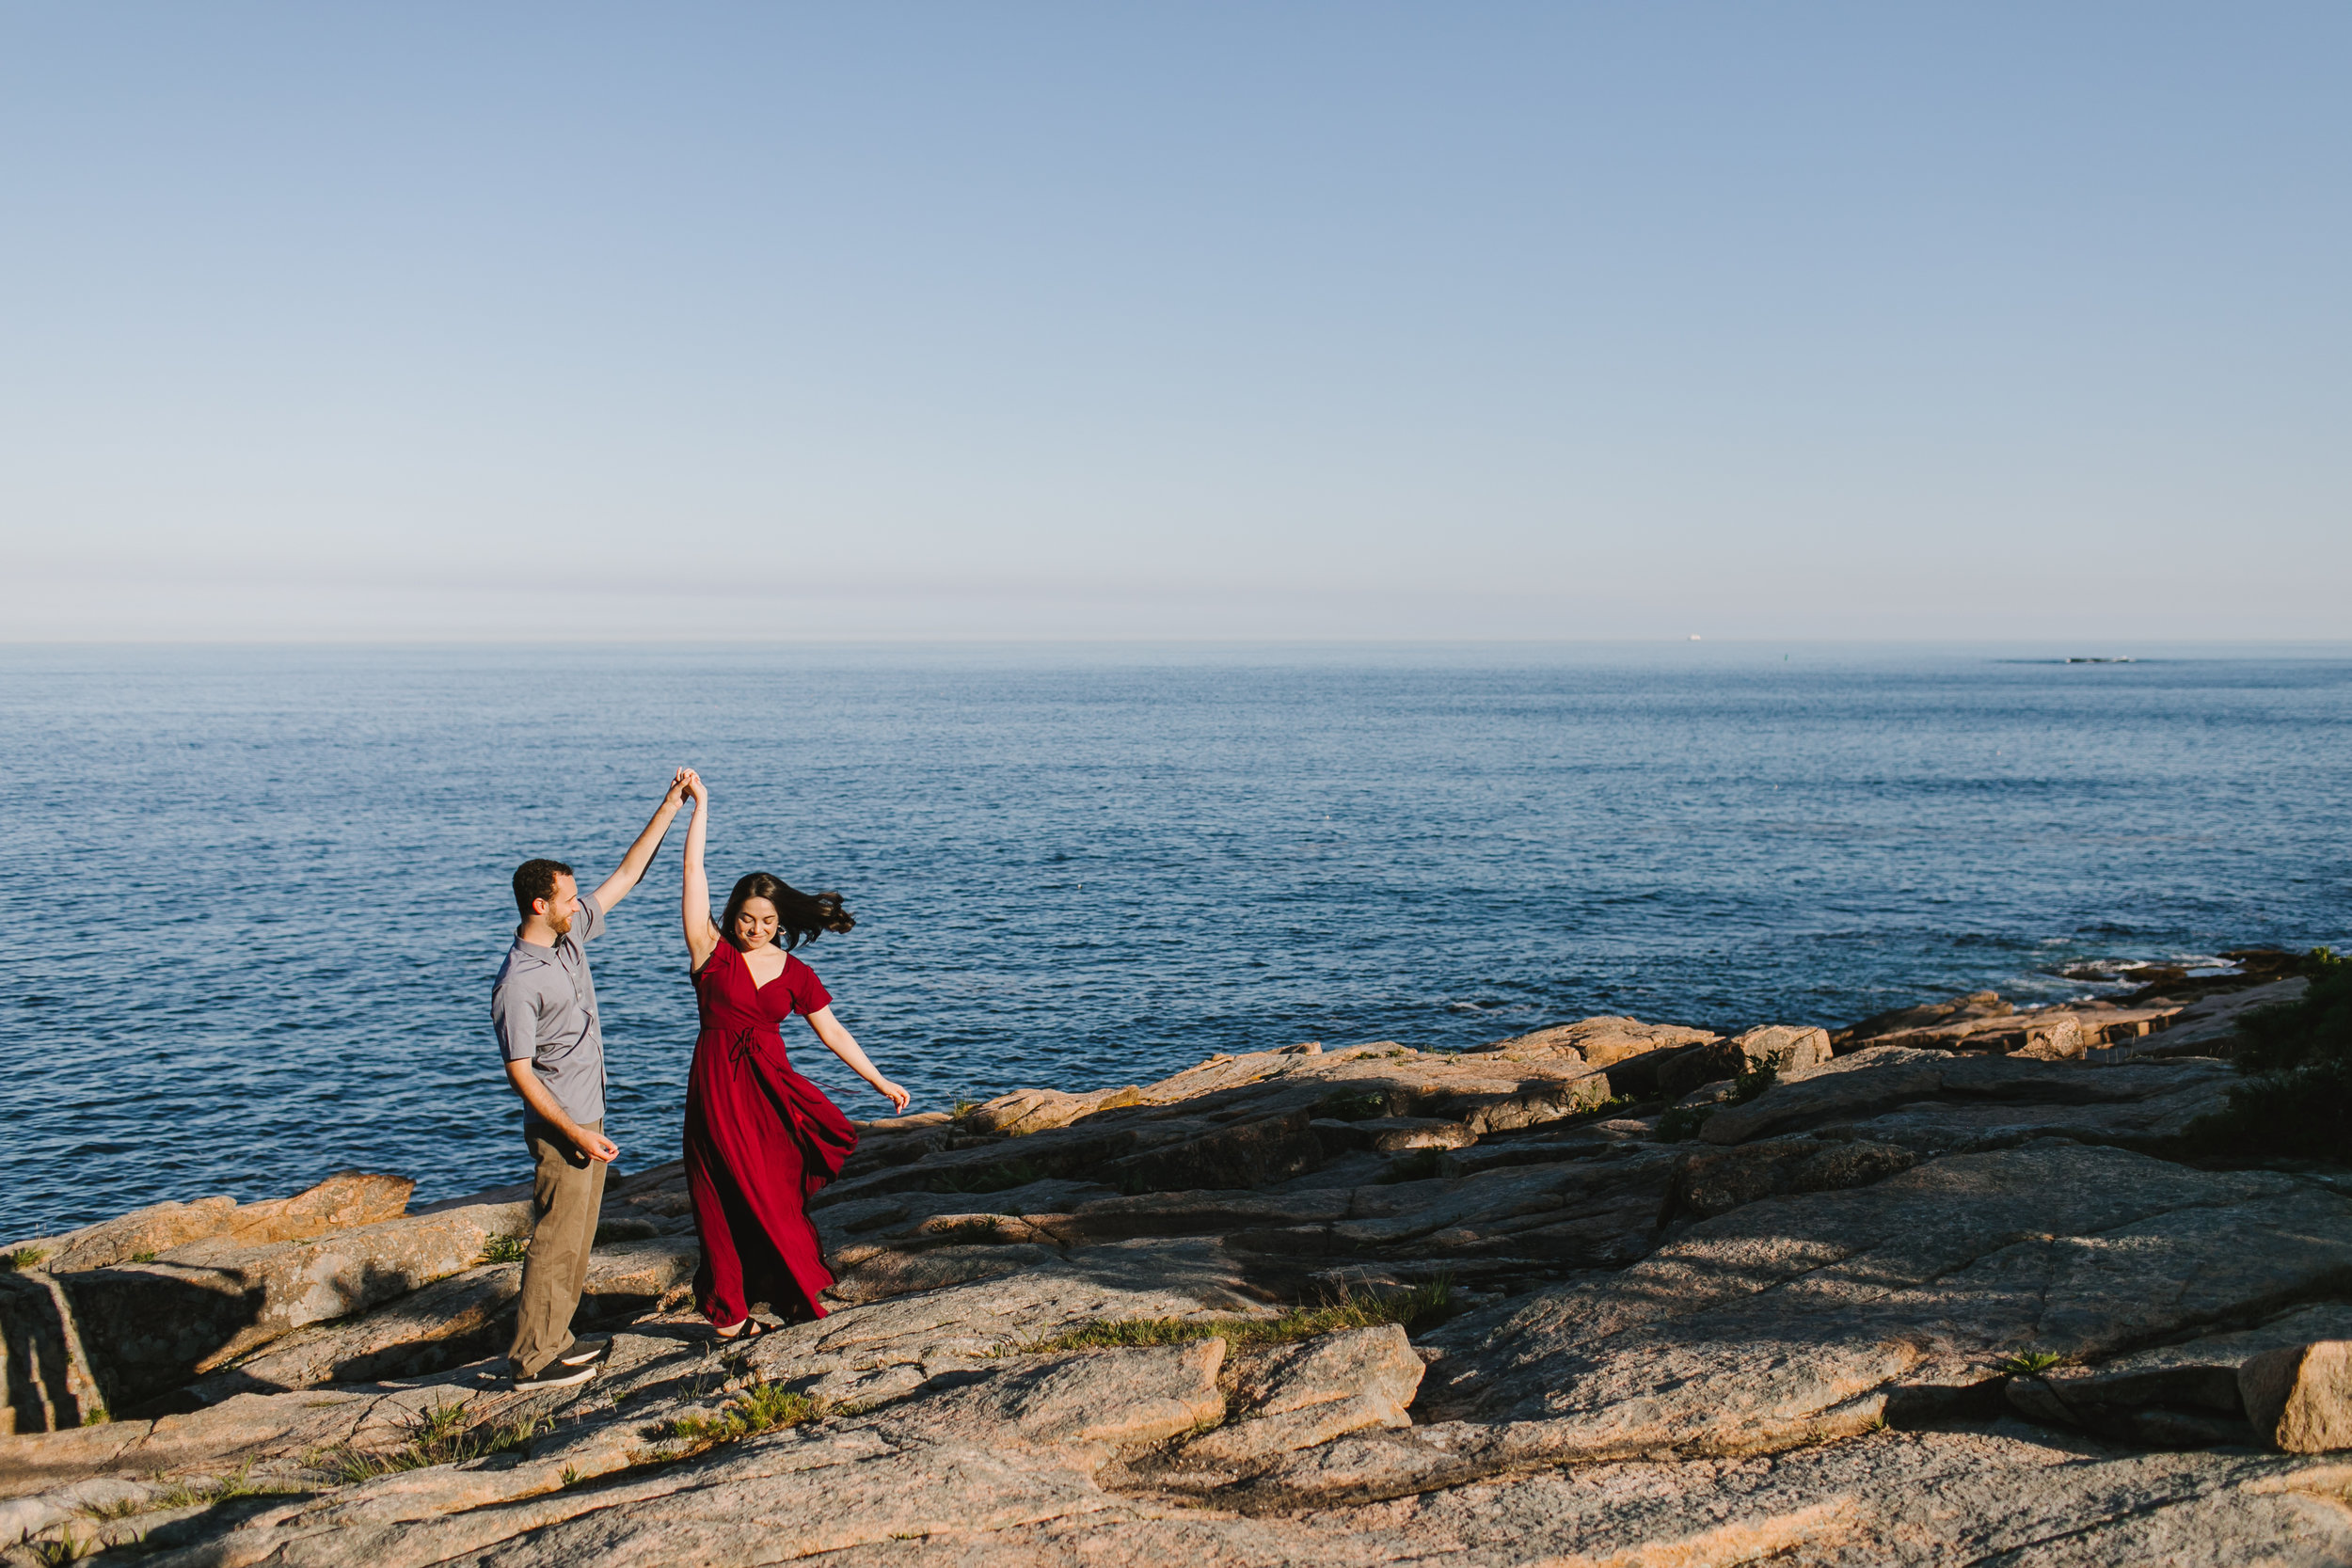 Acadia National Park Engagement Couples Adventure Photos Photography Session - Emily Tebbetts Photography -2.jpg